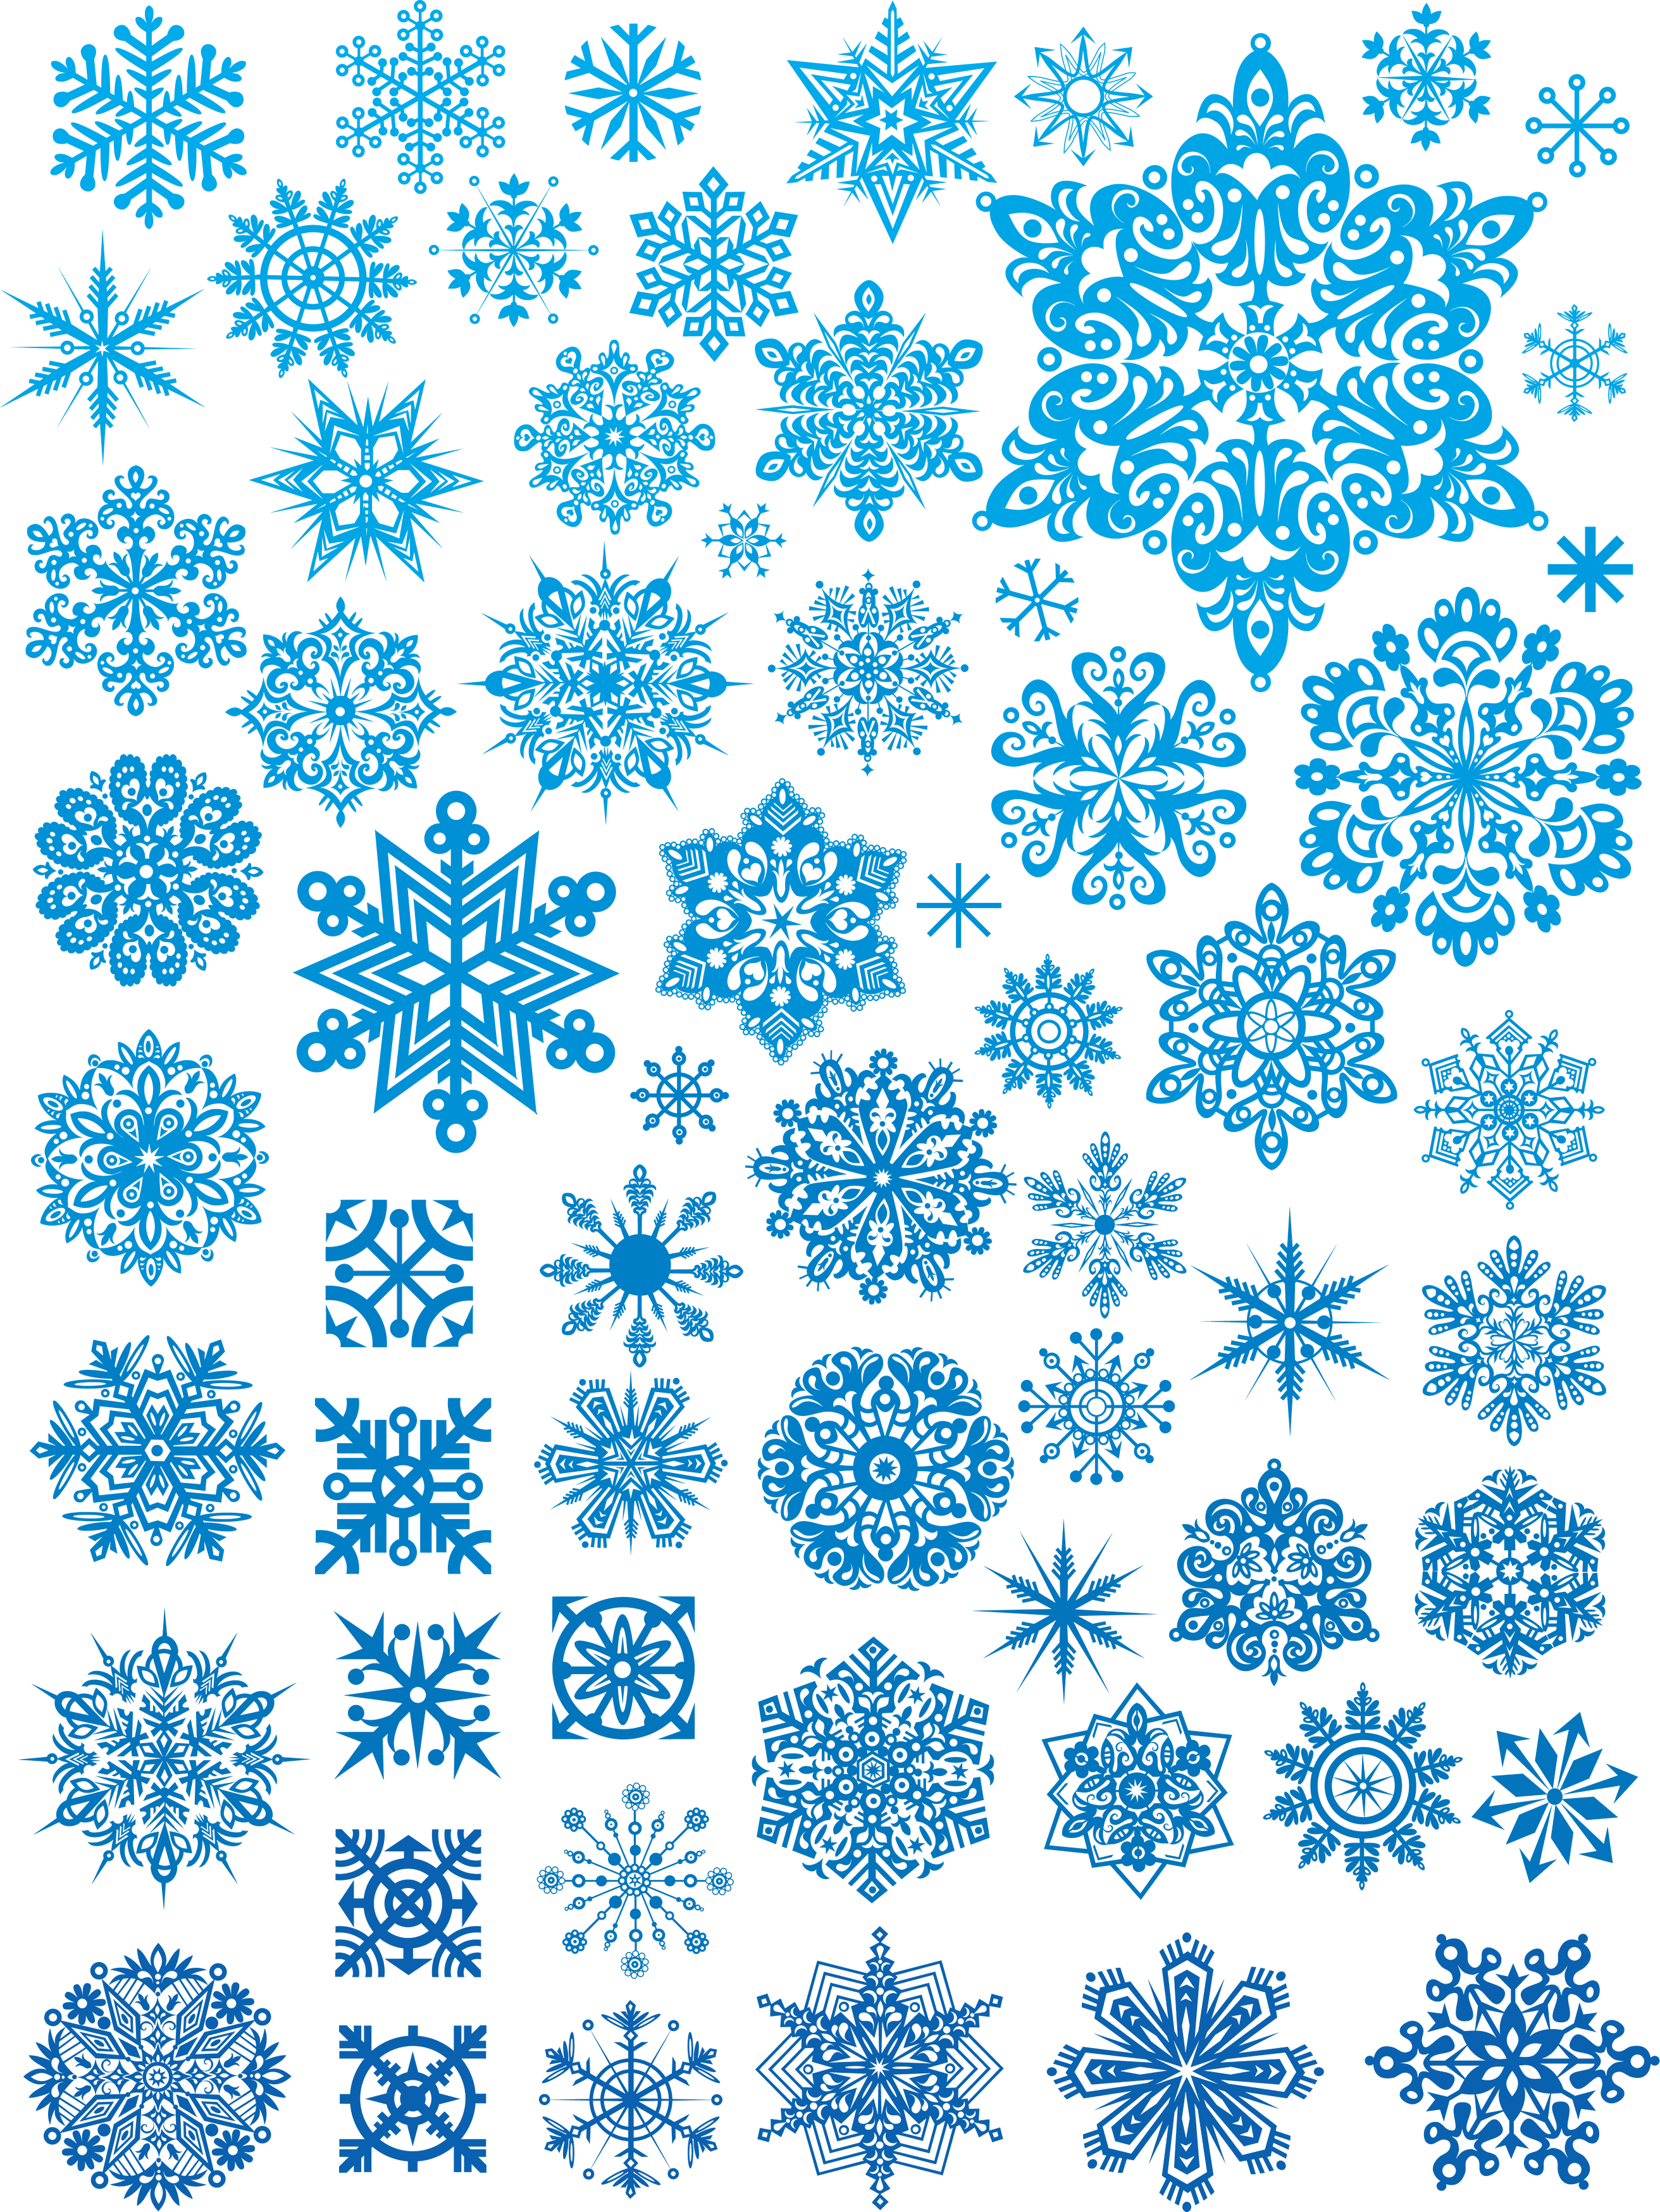 Snowflakes Png Image PNG Image